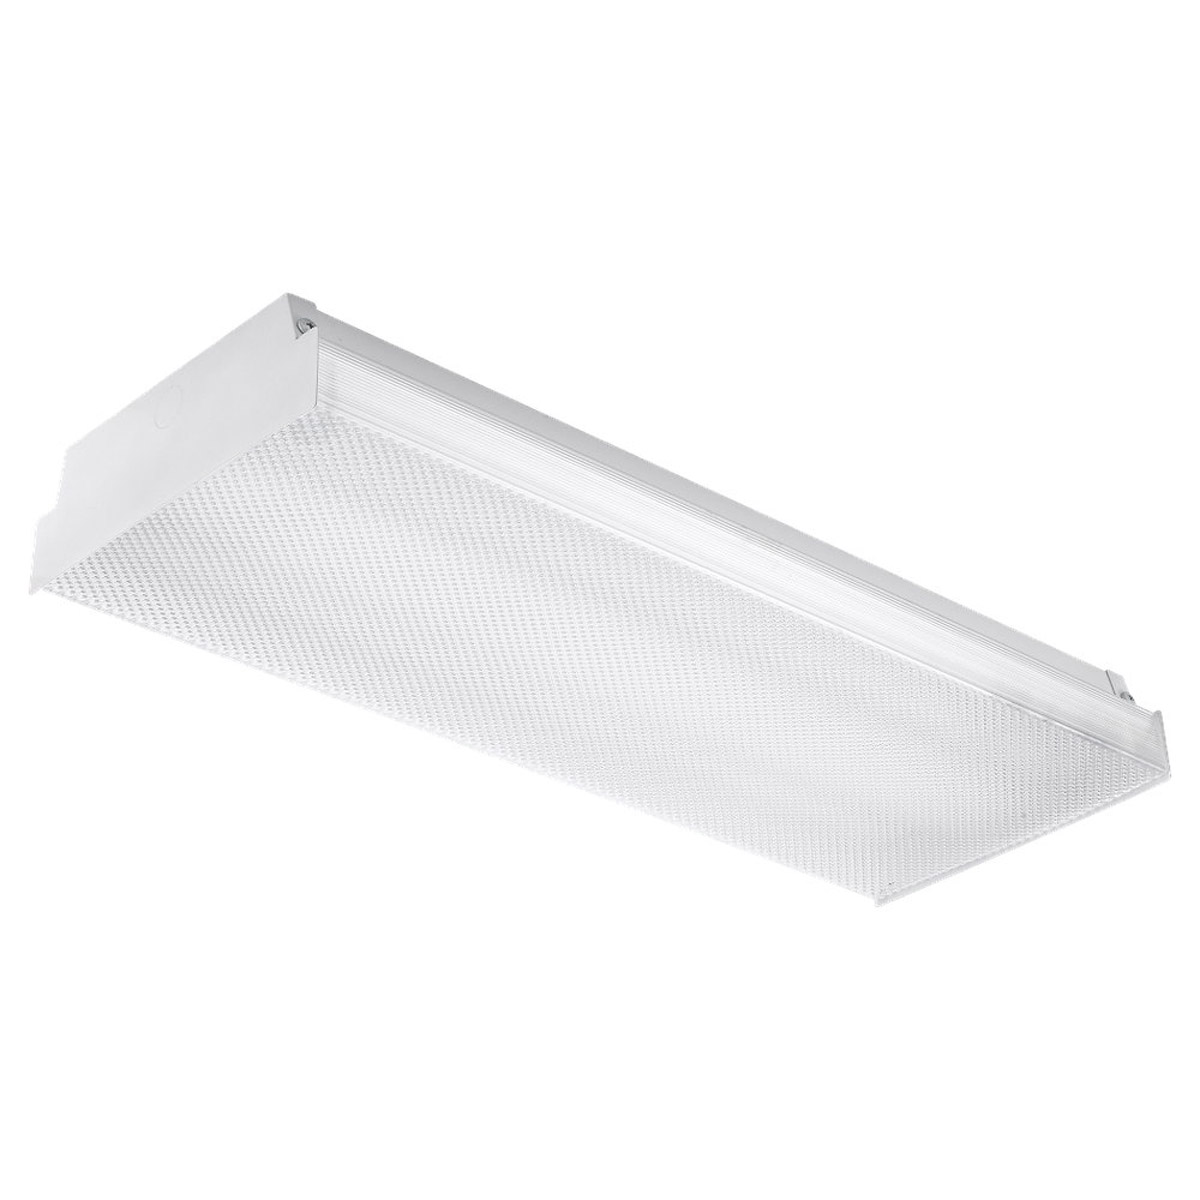 Sea Gull Lighting Signature 2 Light Fluorescent Flush Mount in White 59033LE-15